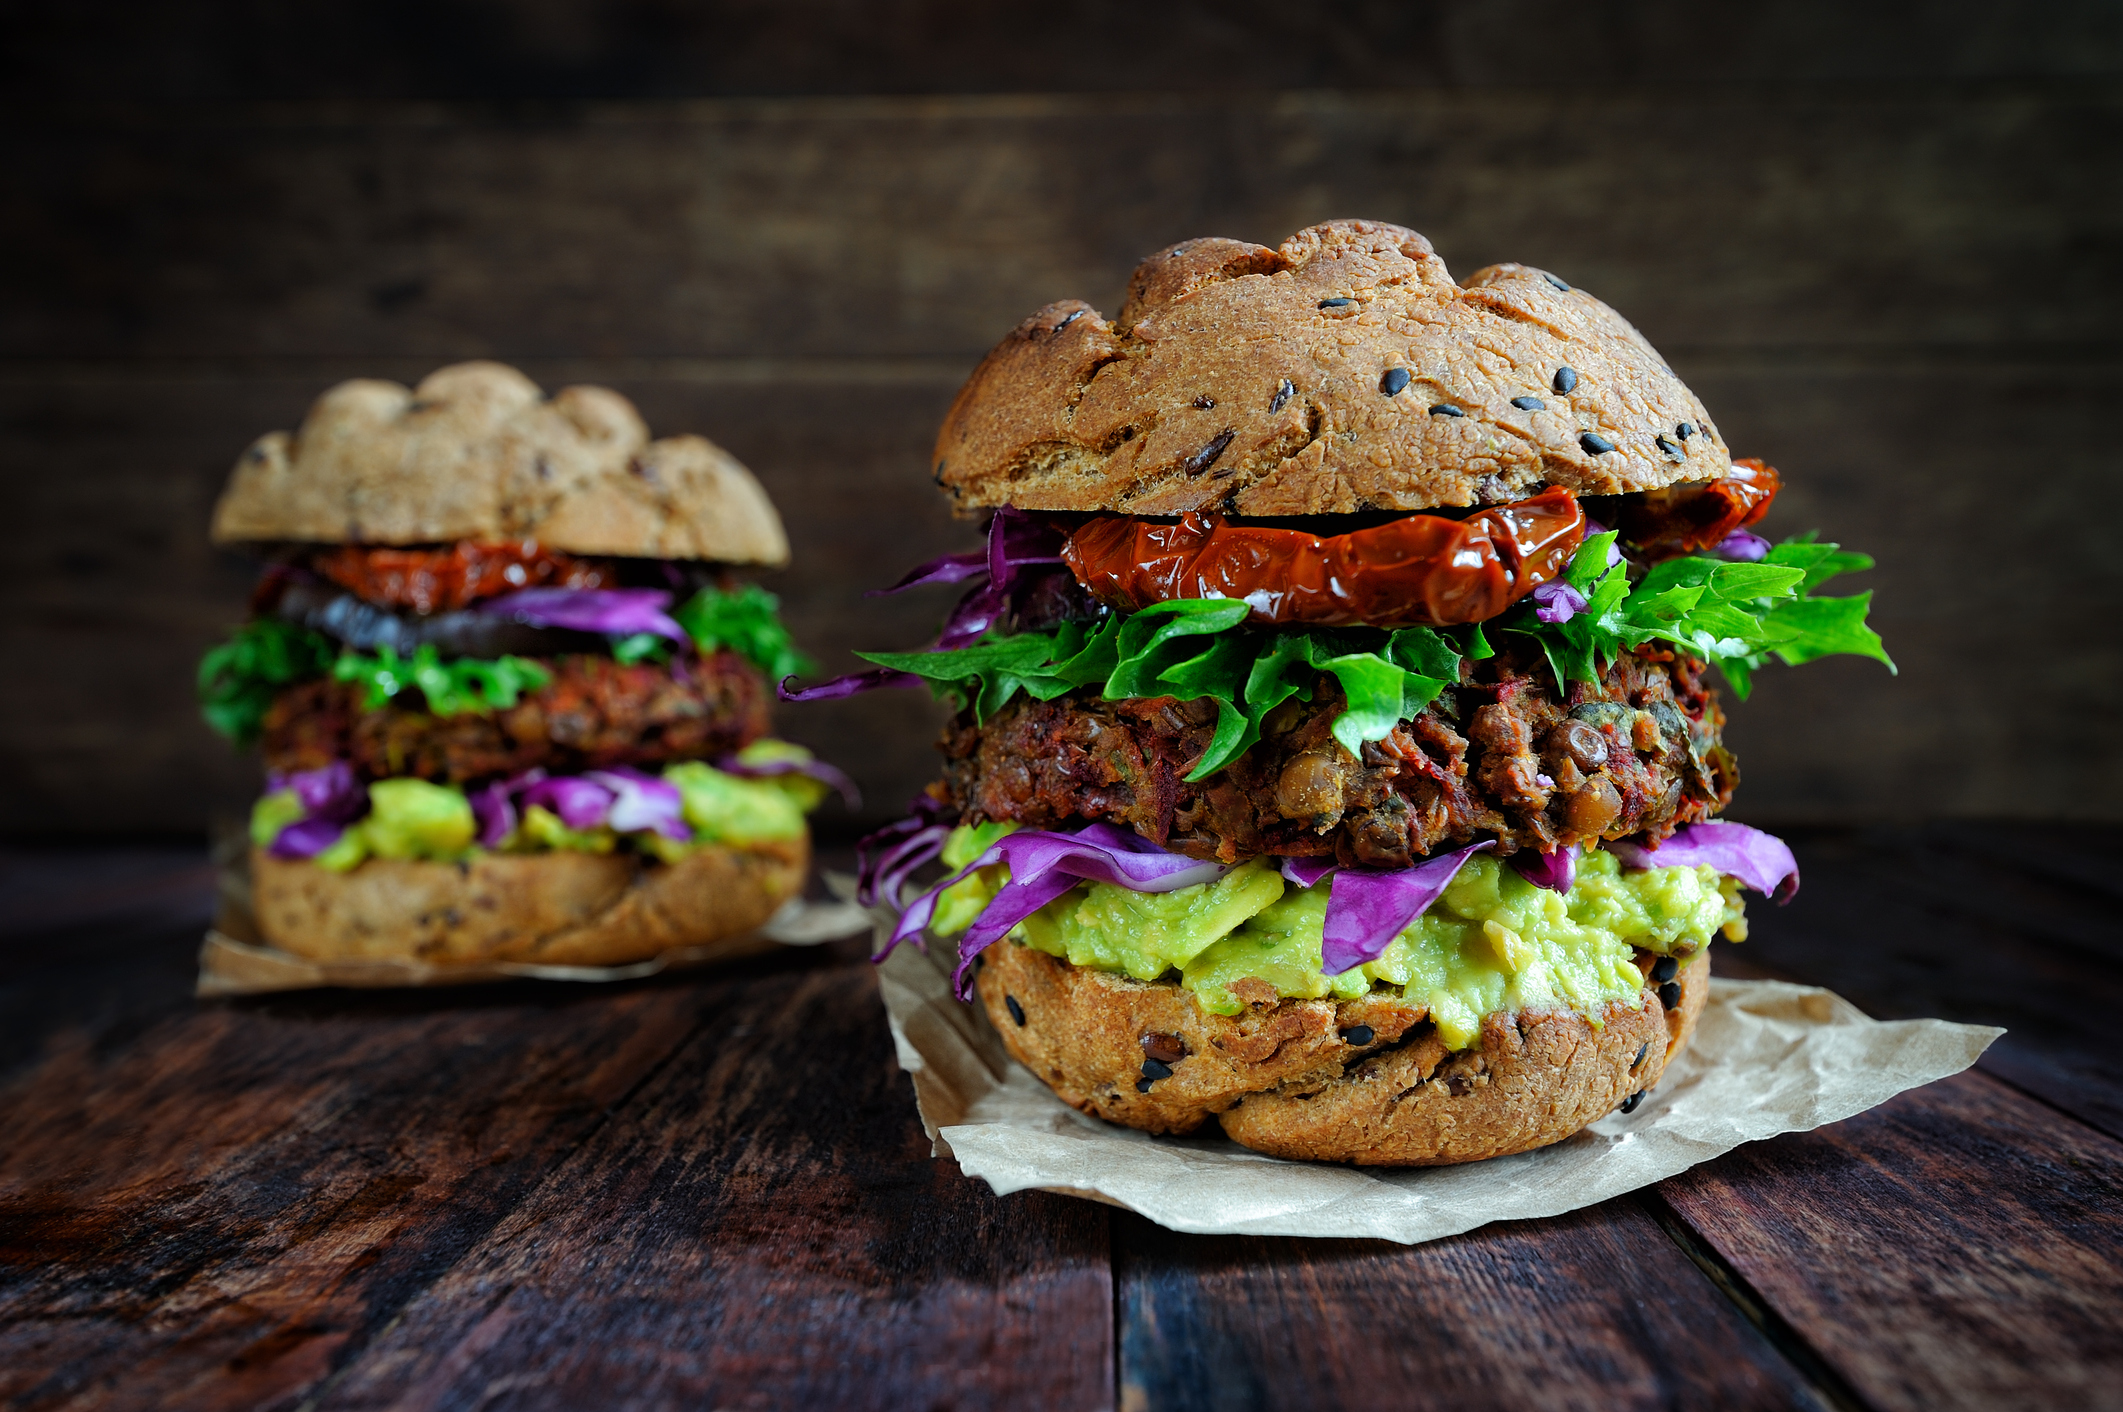 Fresh beetroot lentil vegan burger with grilled eggplant, sun-dried tomatoes and guacamole sauce